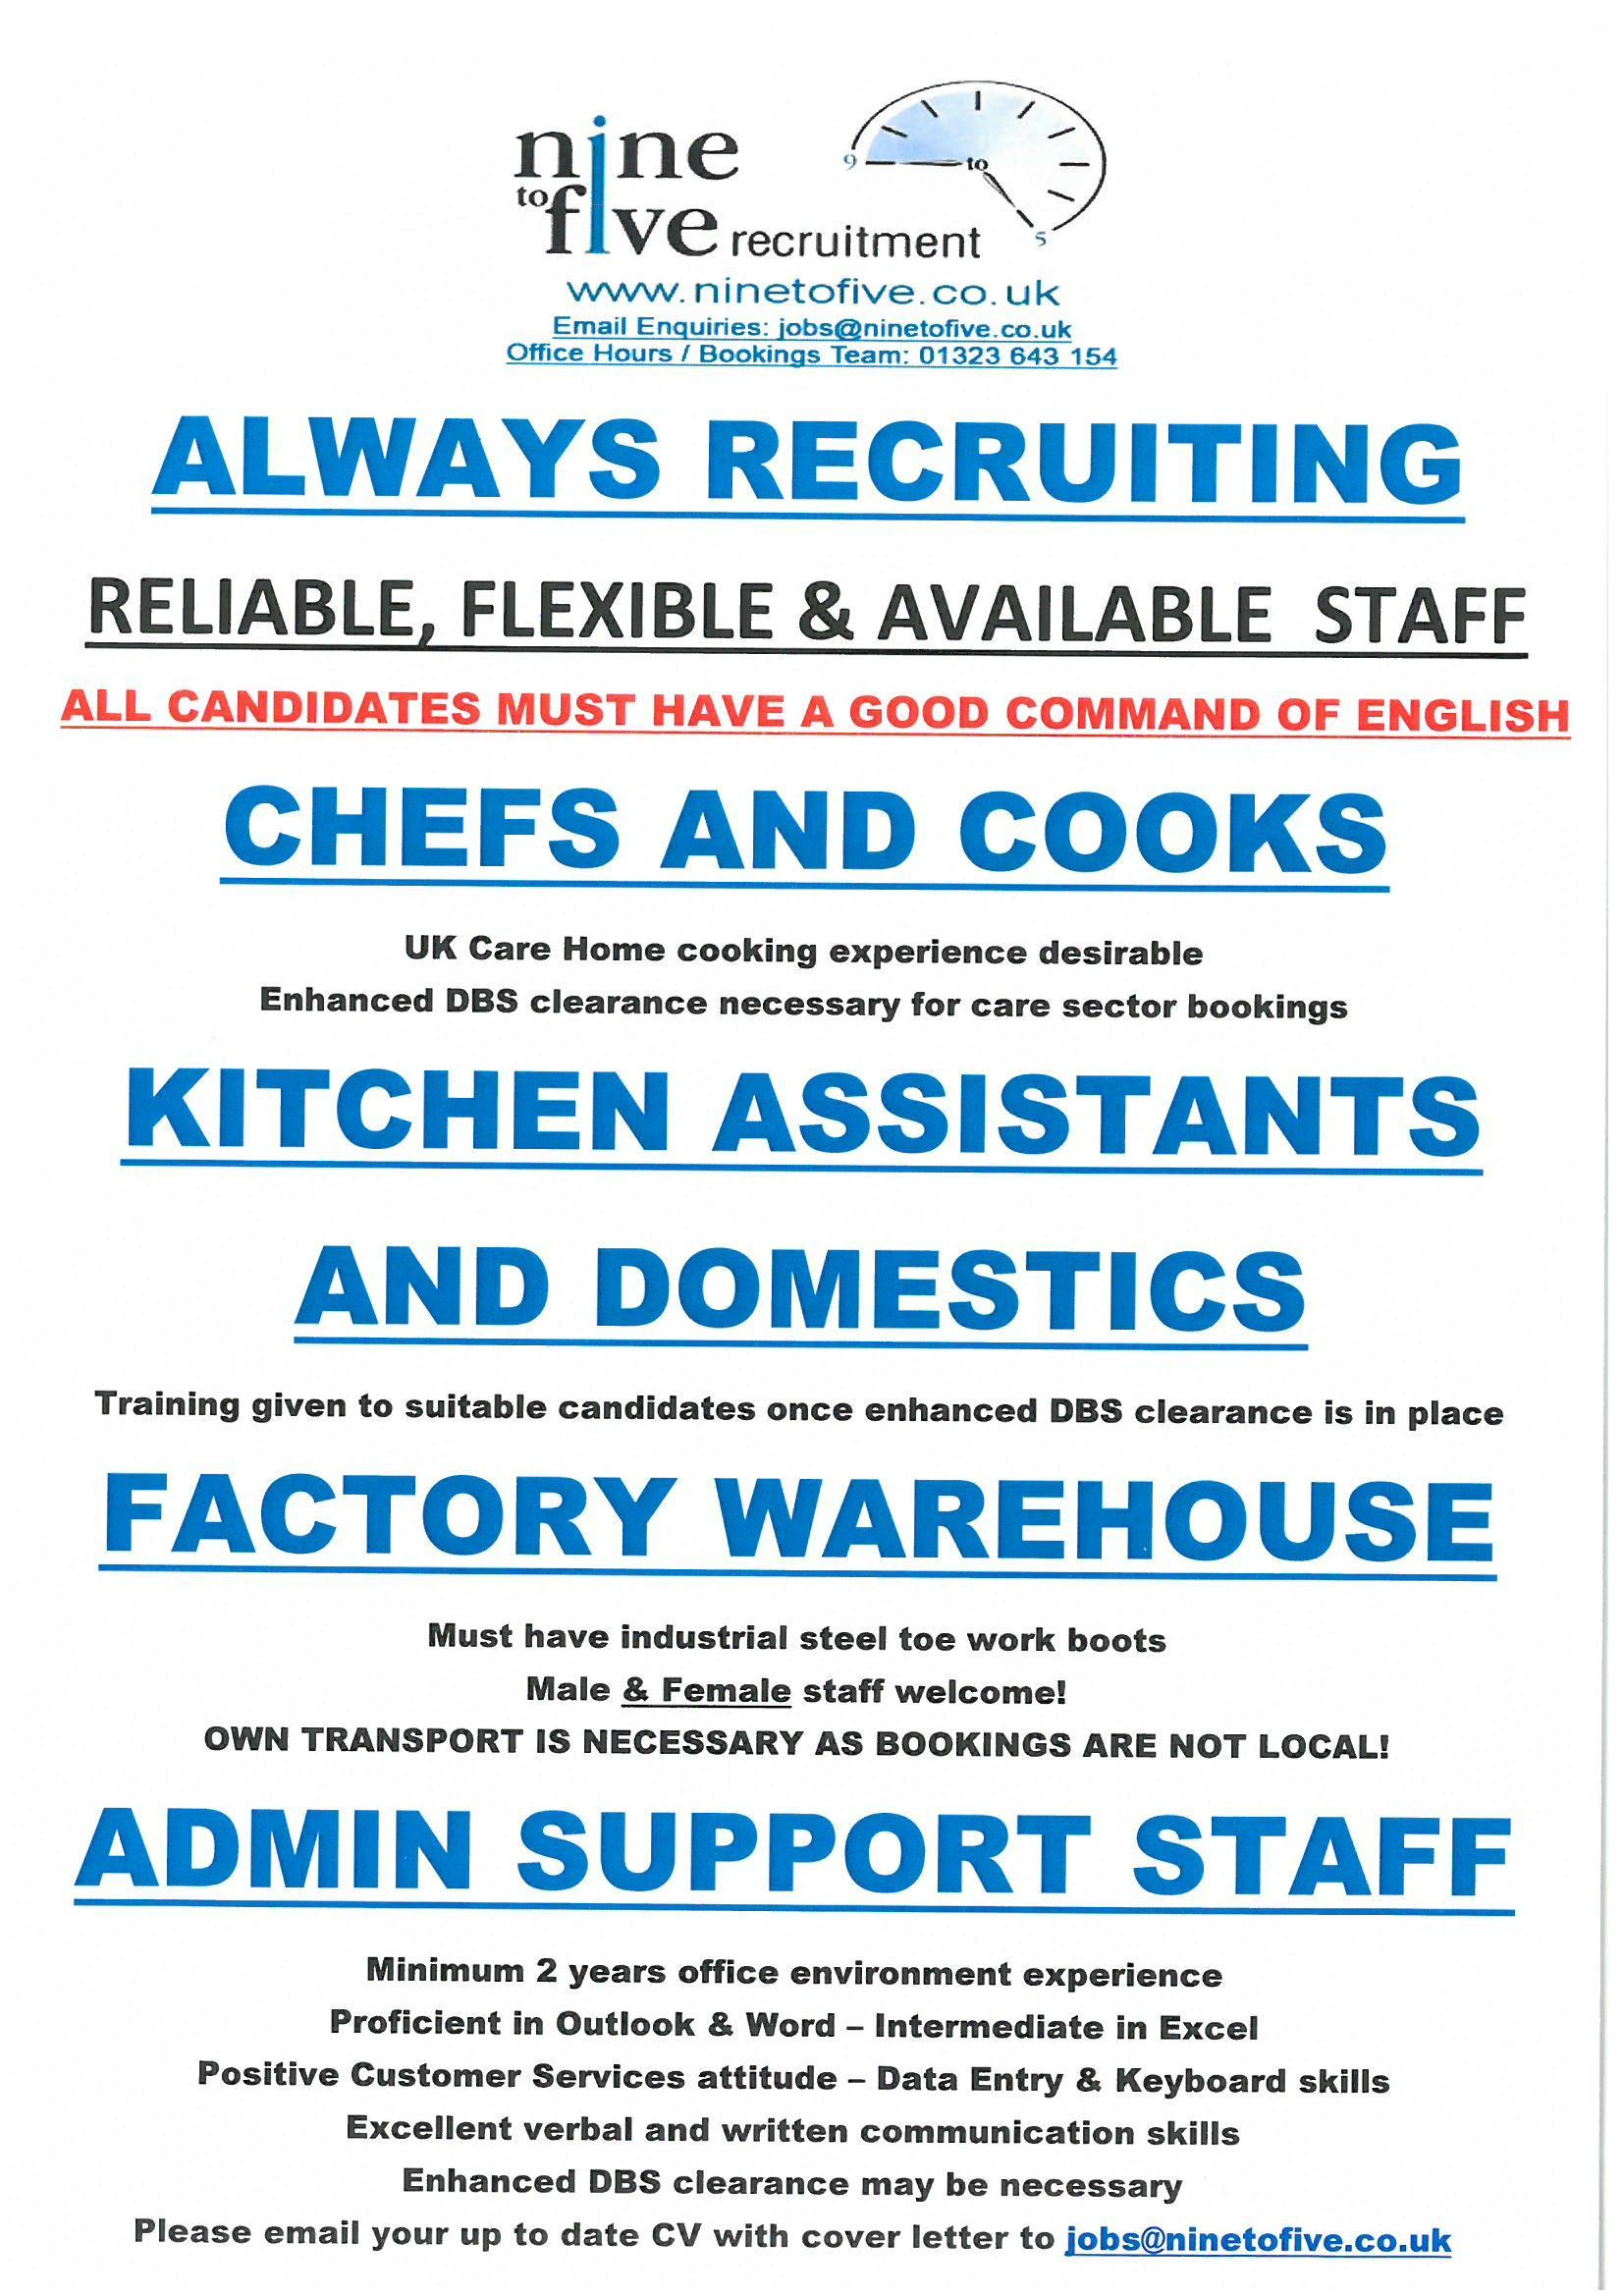 DBS cleared CATERING staff (Chefs, Cooks and Kitchen Assistants